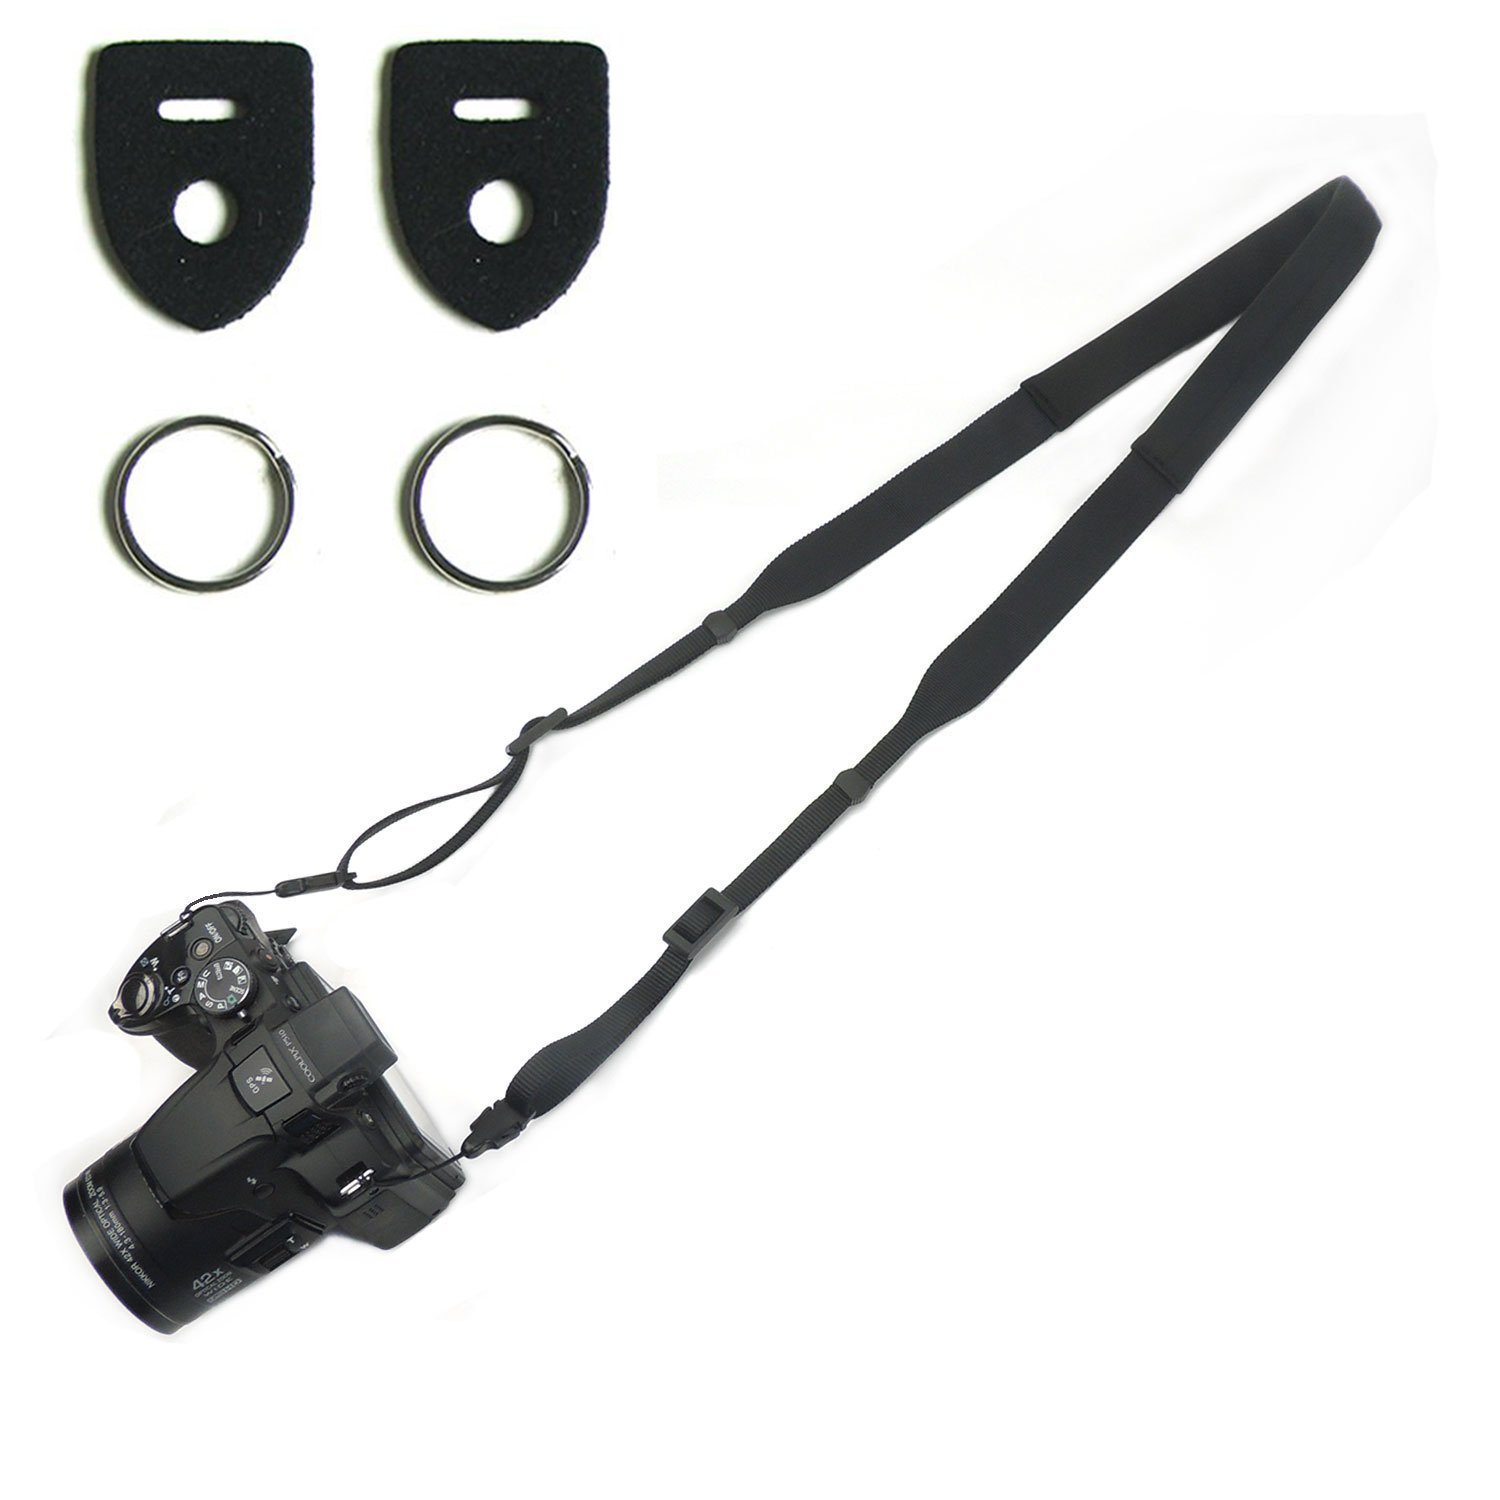 CHMETE Specially Design for Summer Can Be Washed Camera Neck Strap (Black)